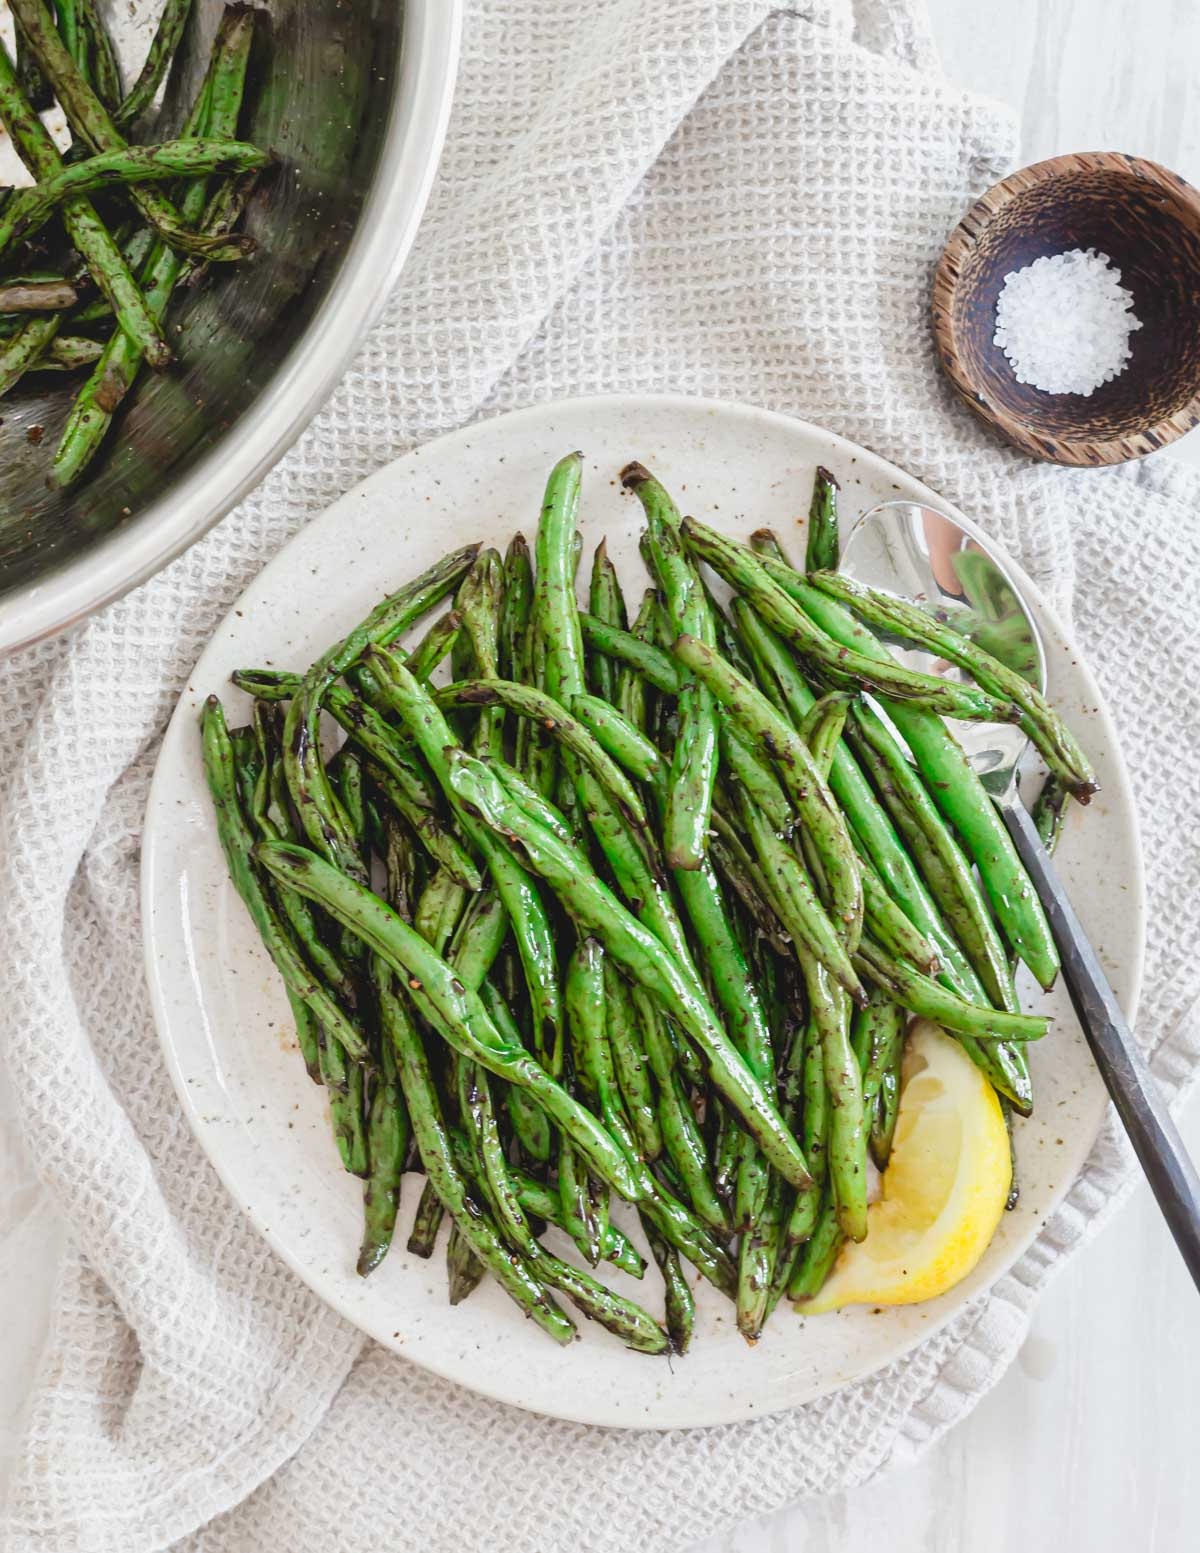 Grilled green beans with garlic and soy sauce on a plate with serving spoon, salt on the side and lemon for serving.